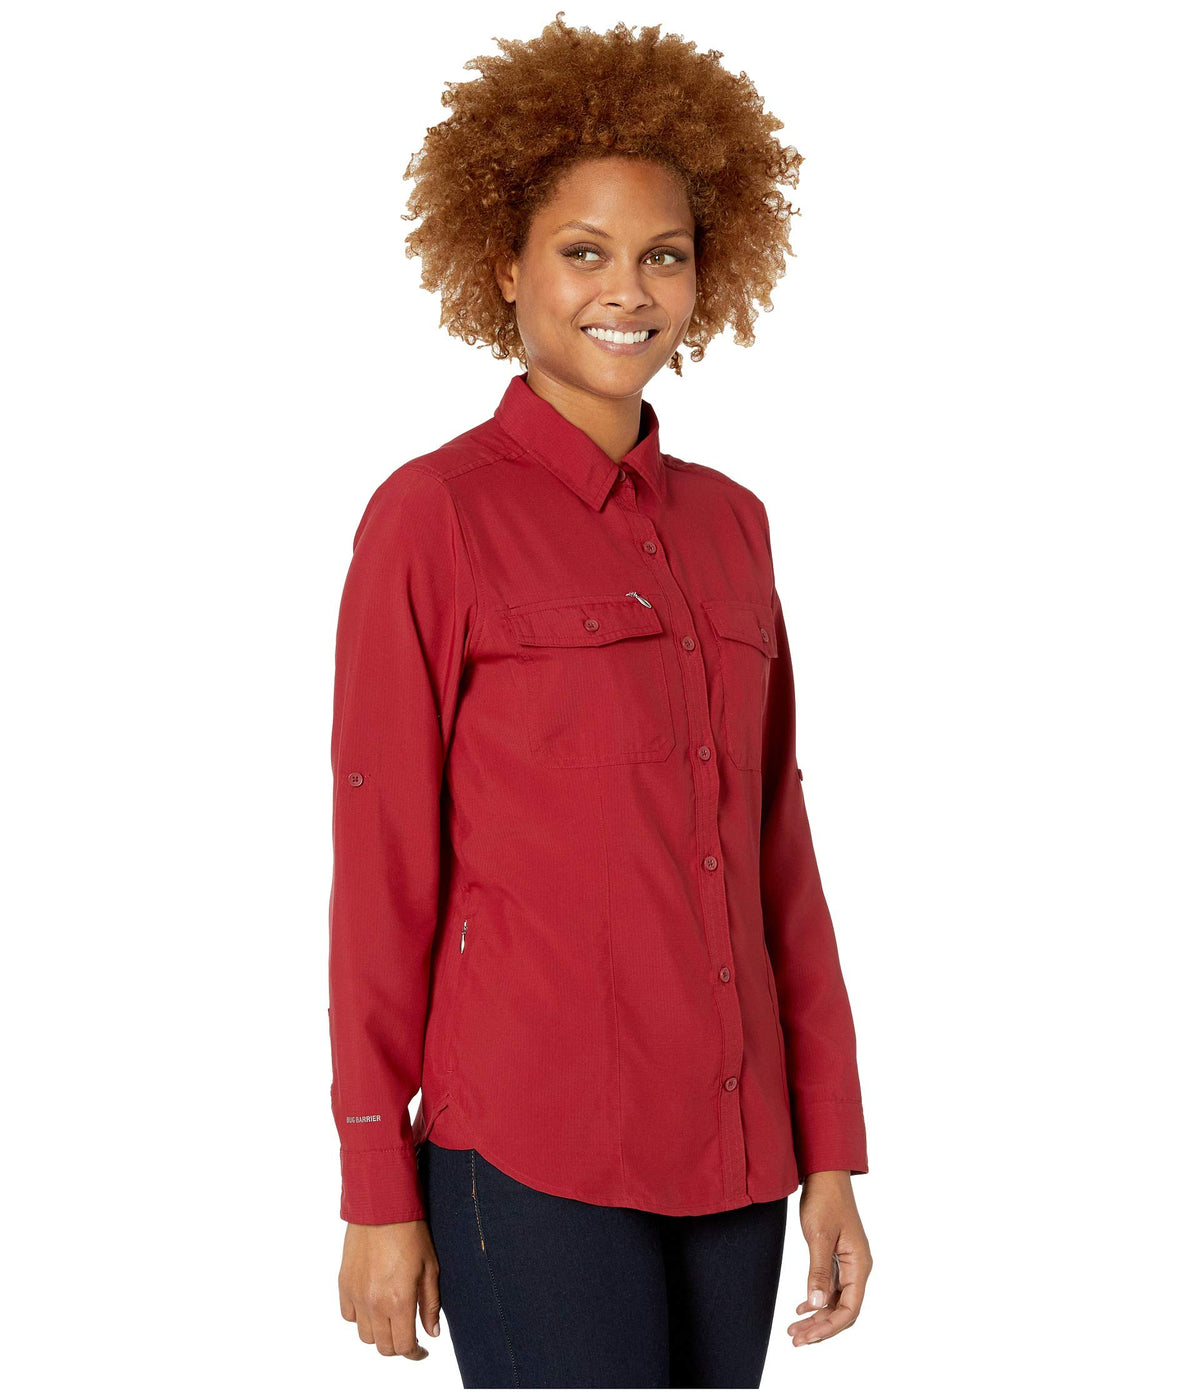 Bug Barrier™ Expedition Dry Long Sleeve Shirt